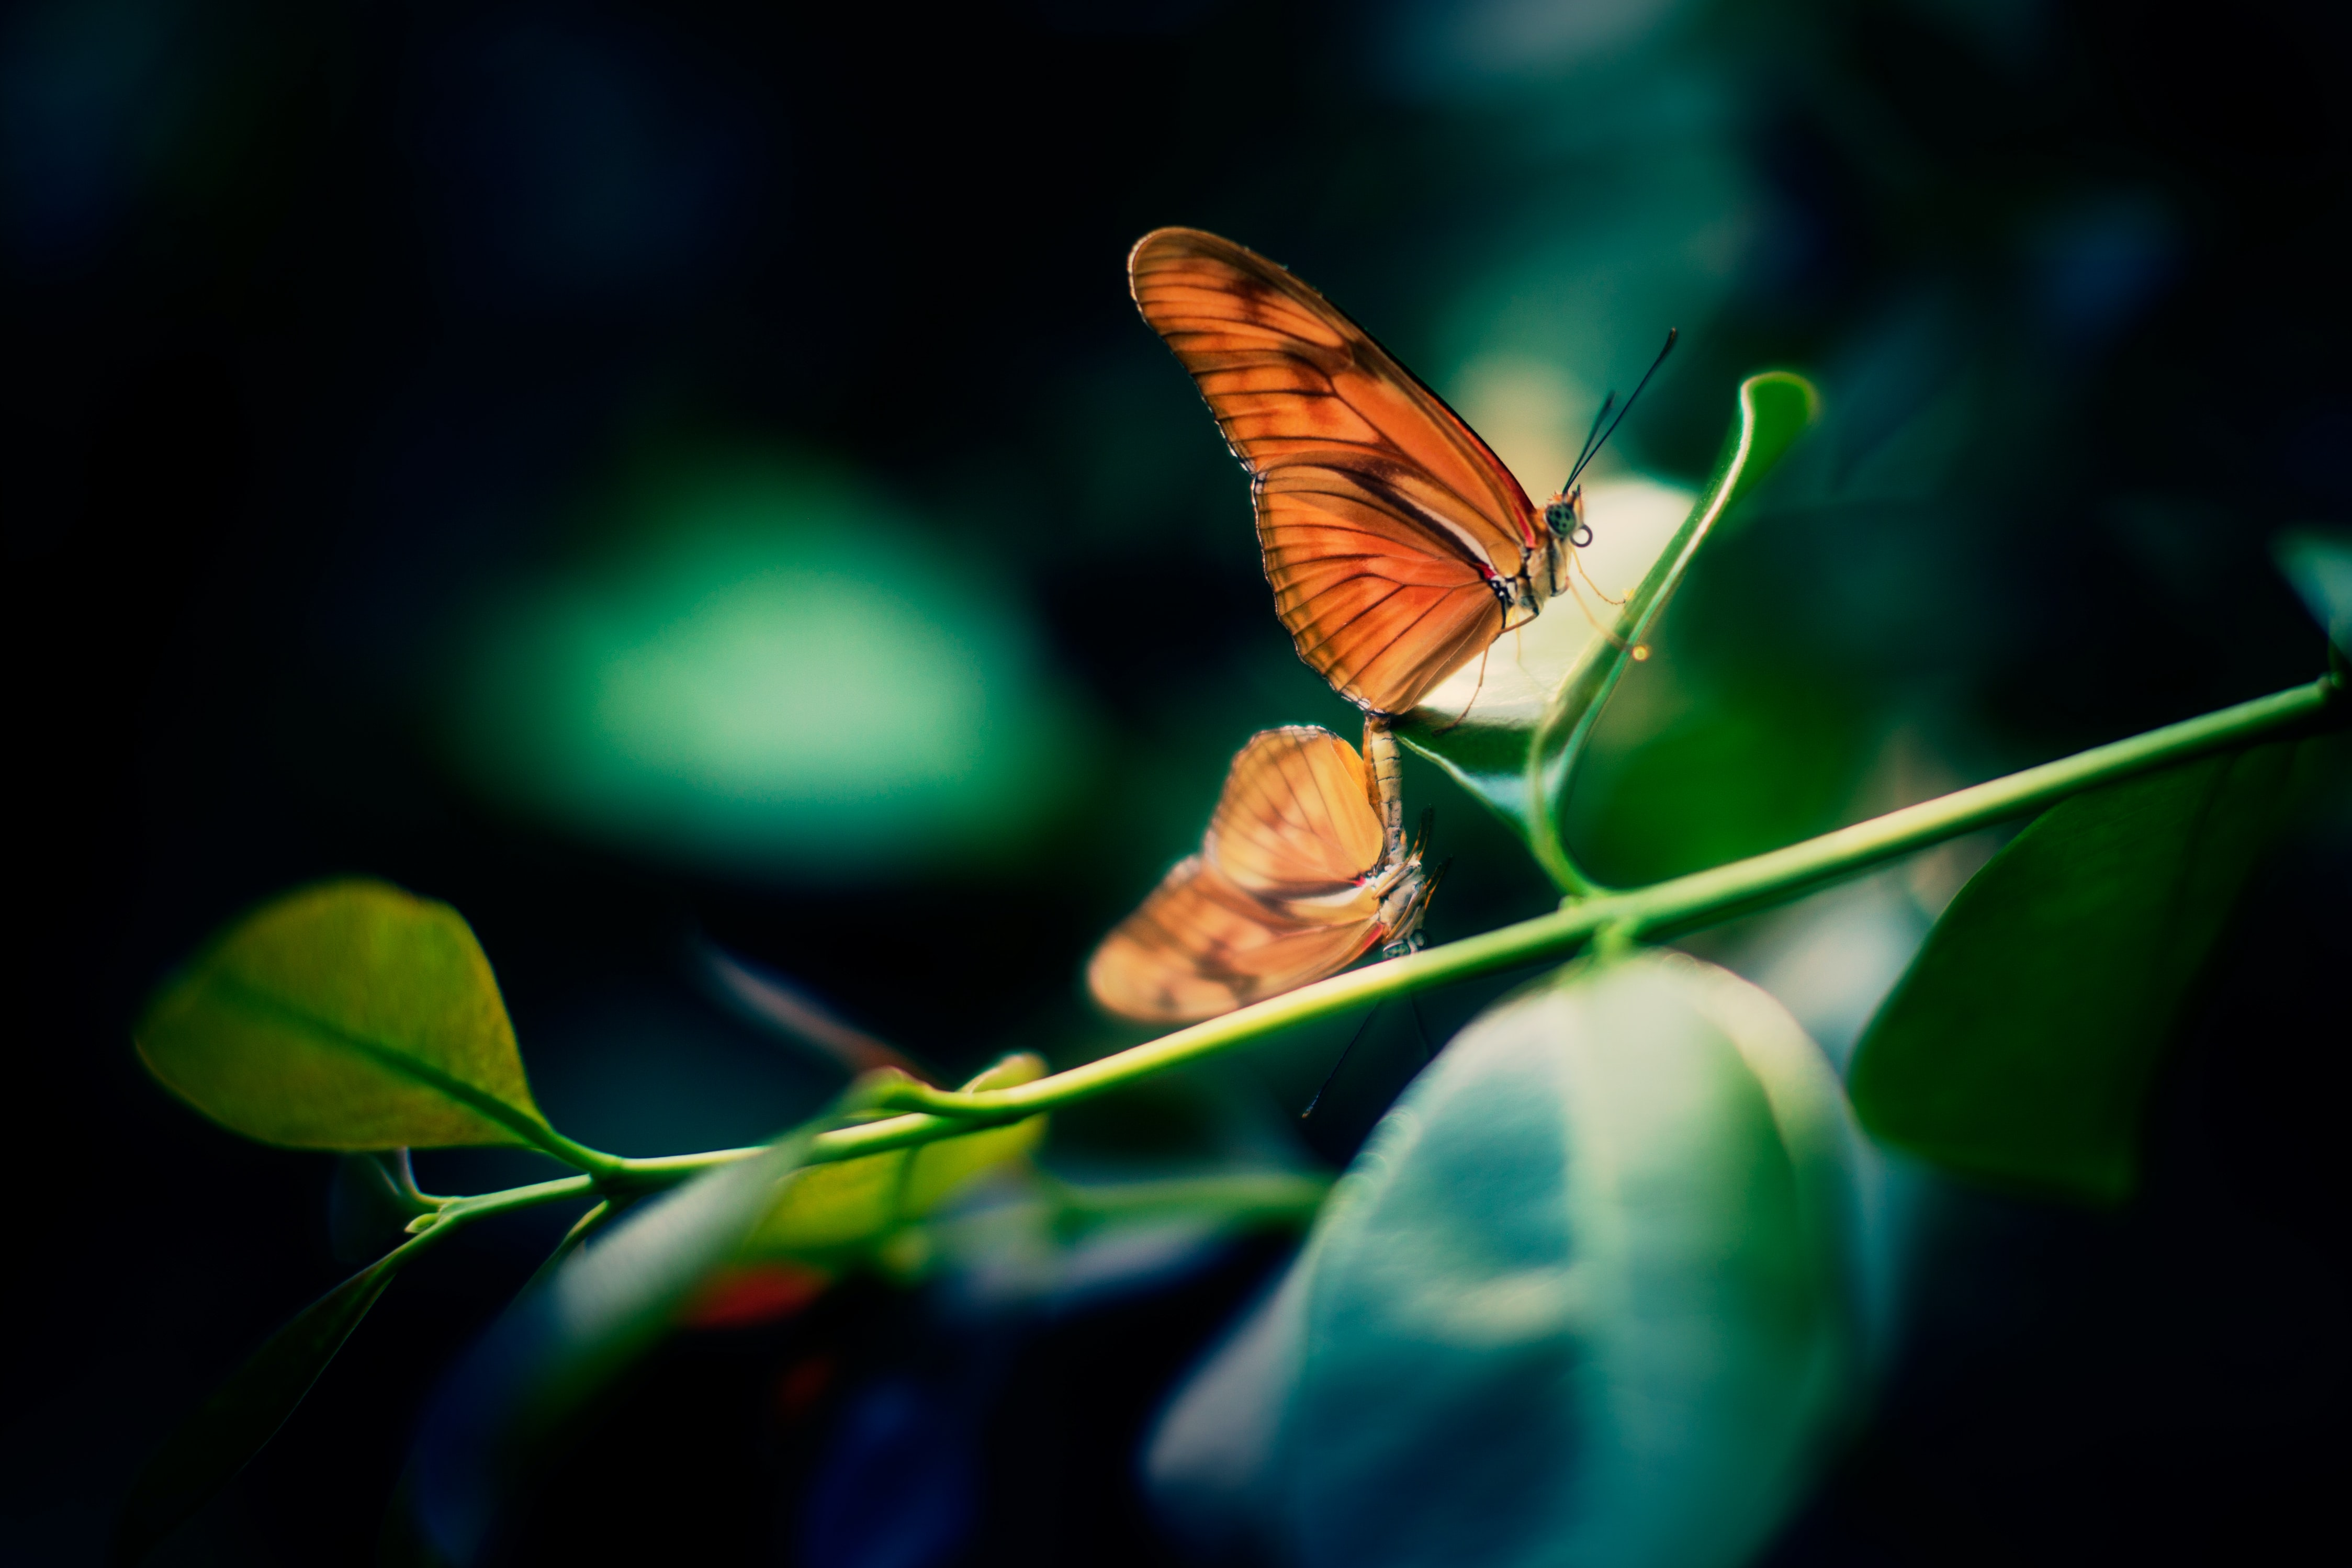 Butterfly inspiration stories